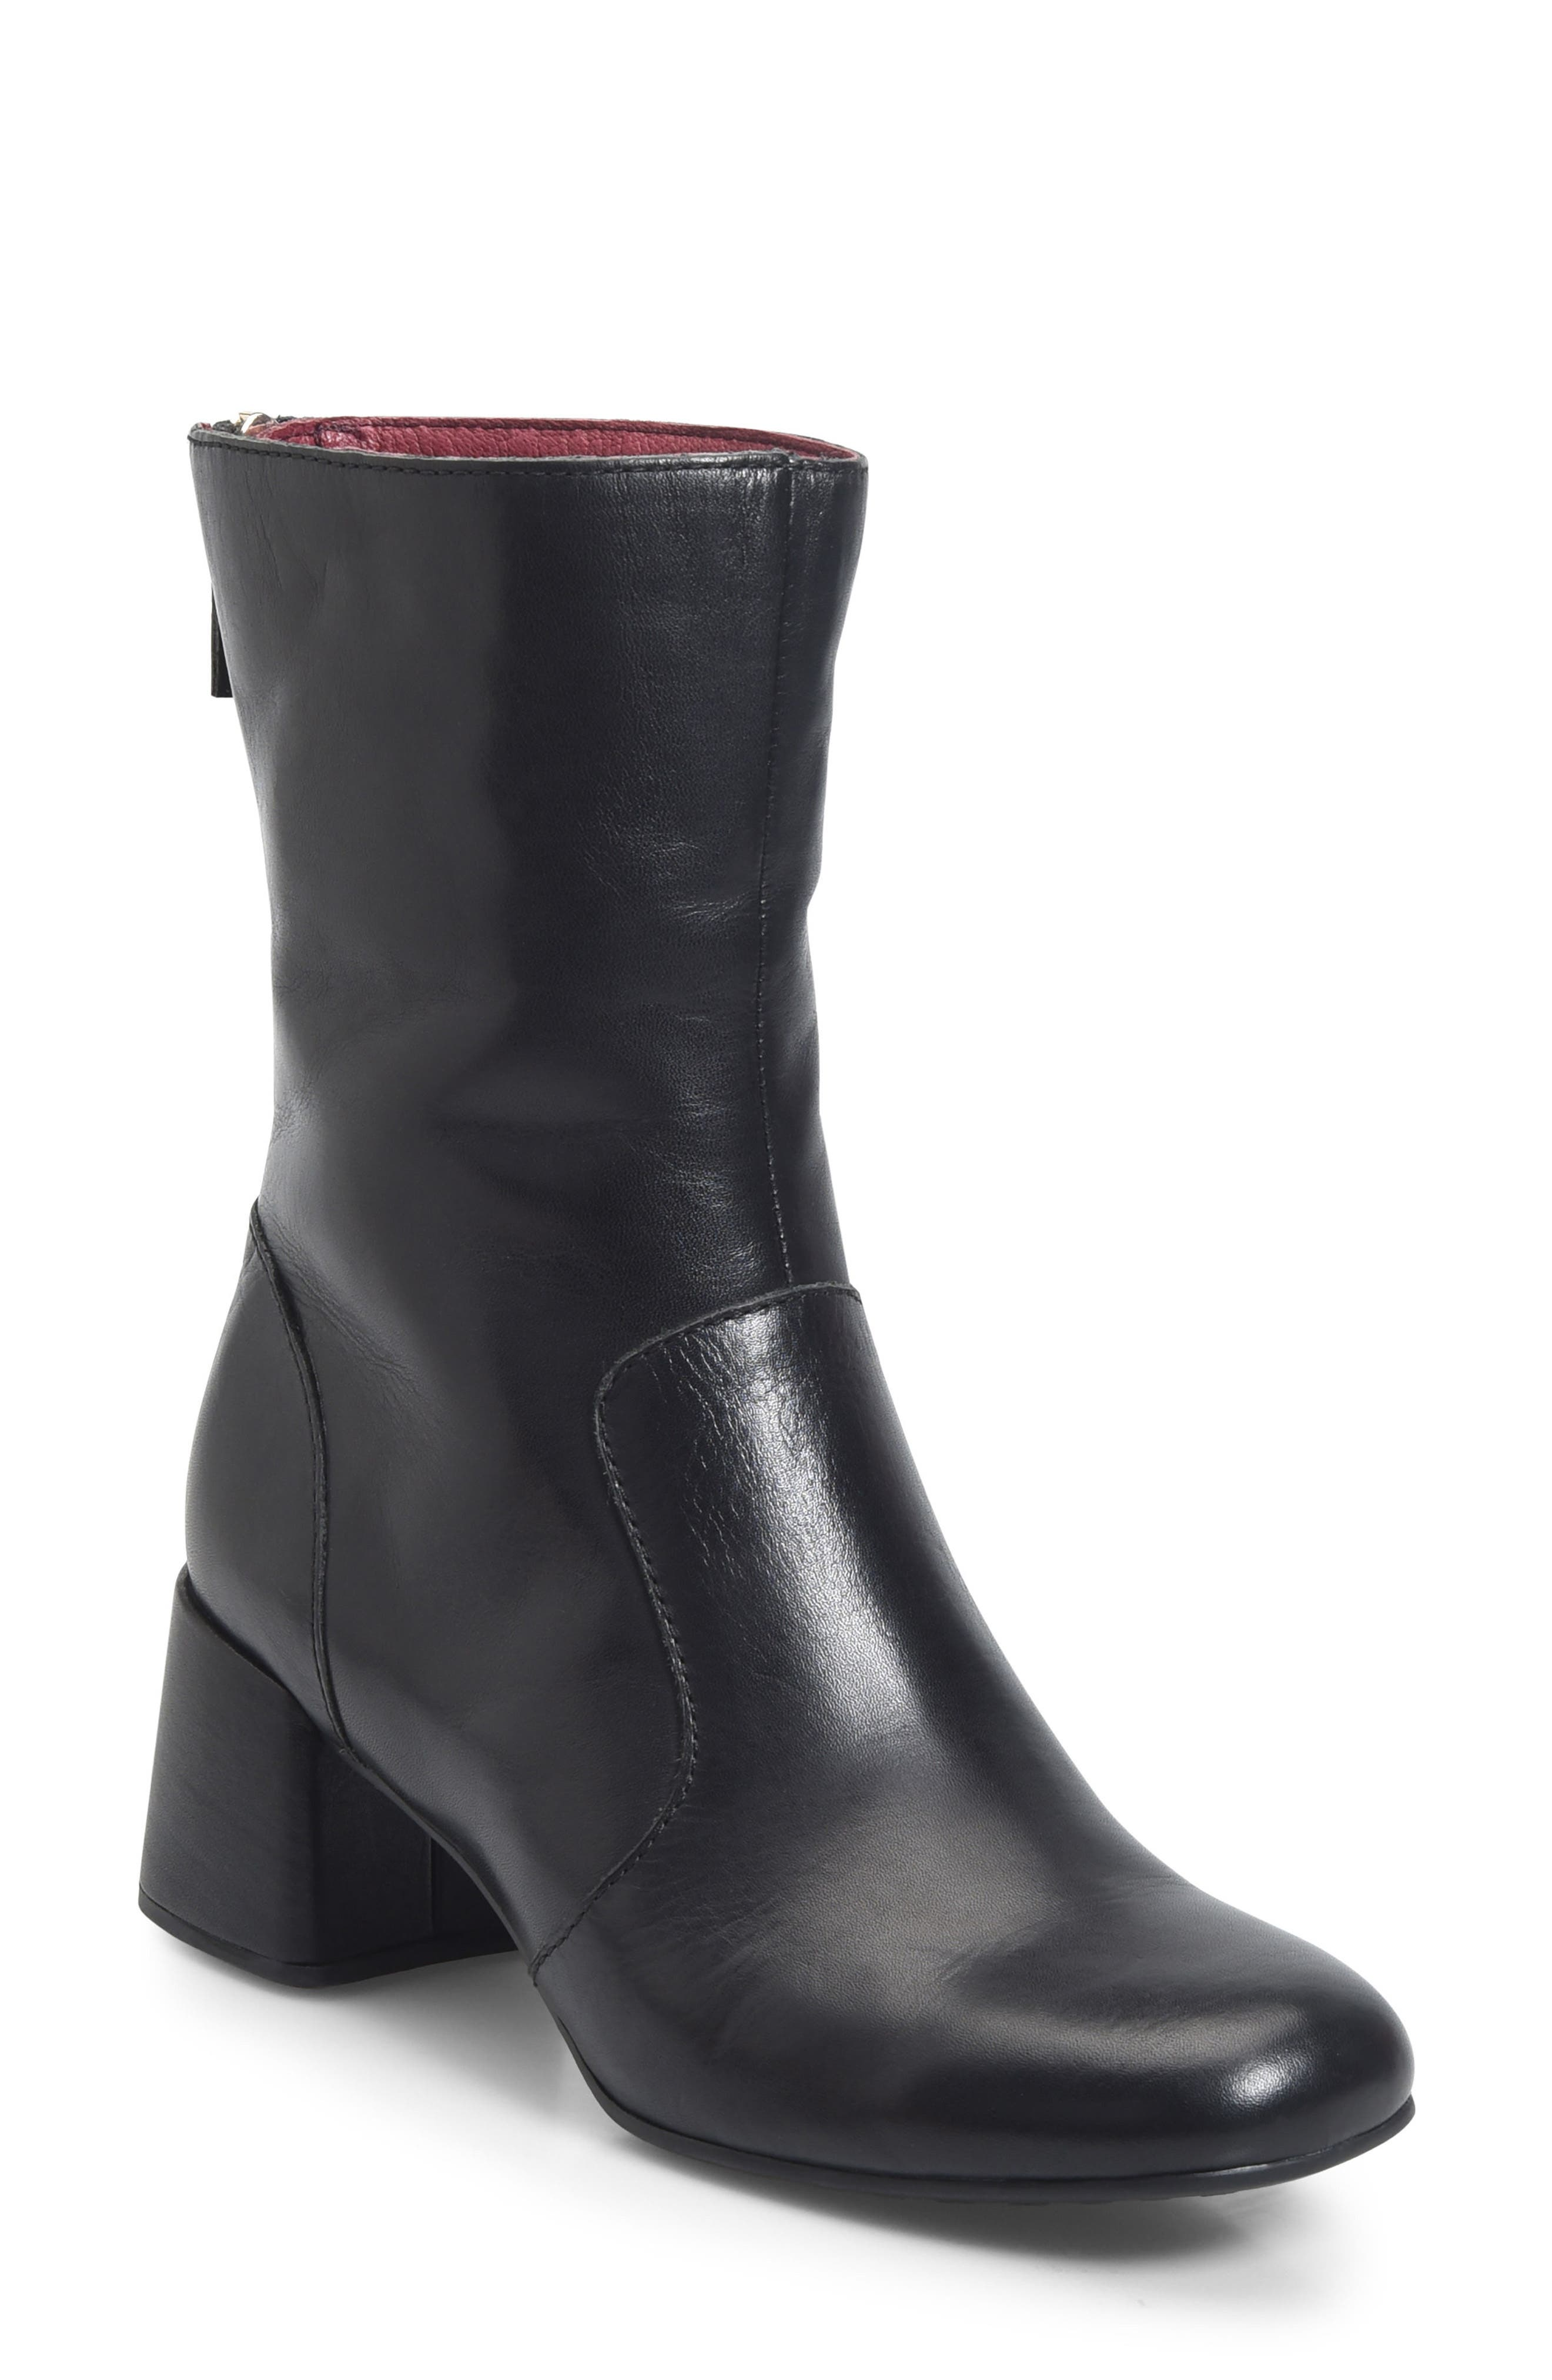 Florence Bootie,                             Main thumbnail 1, color,                             Black Leather